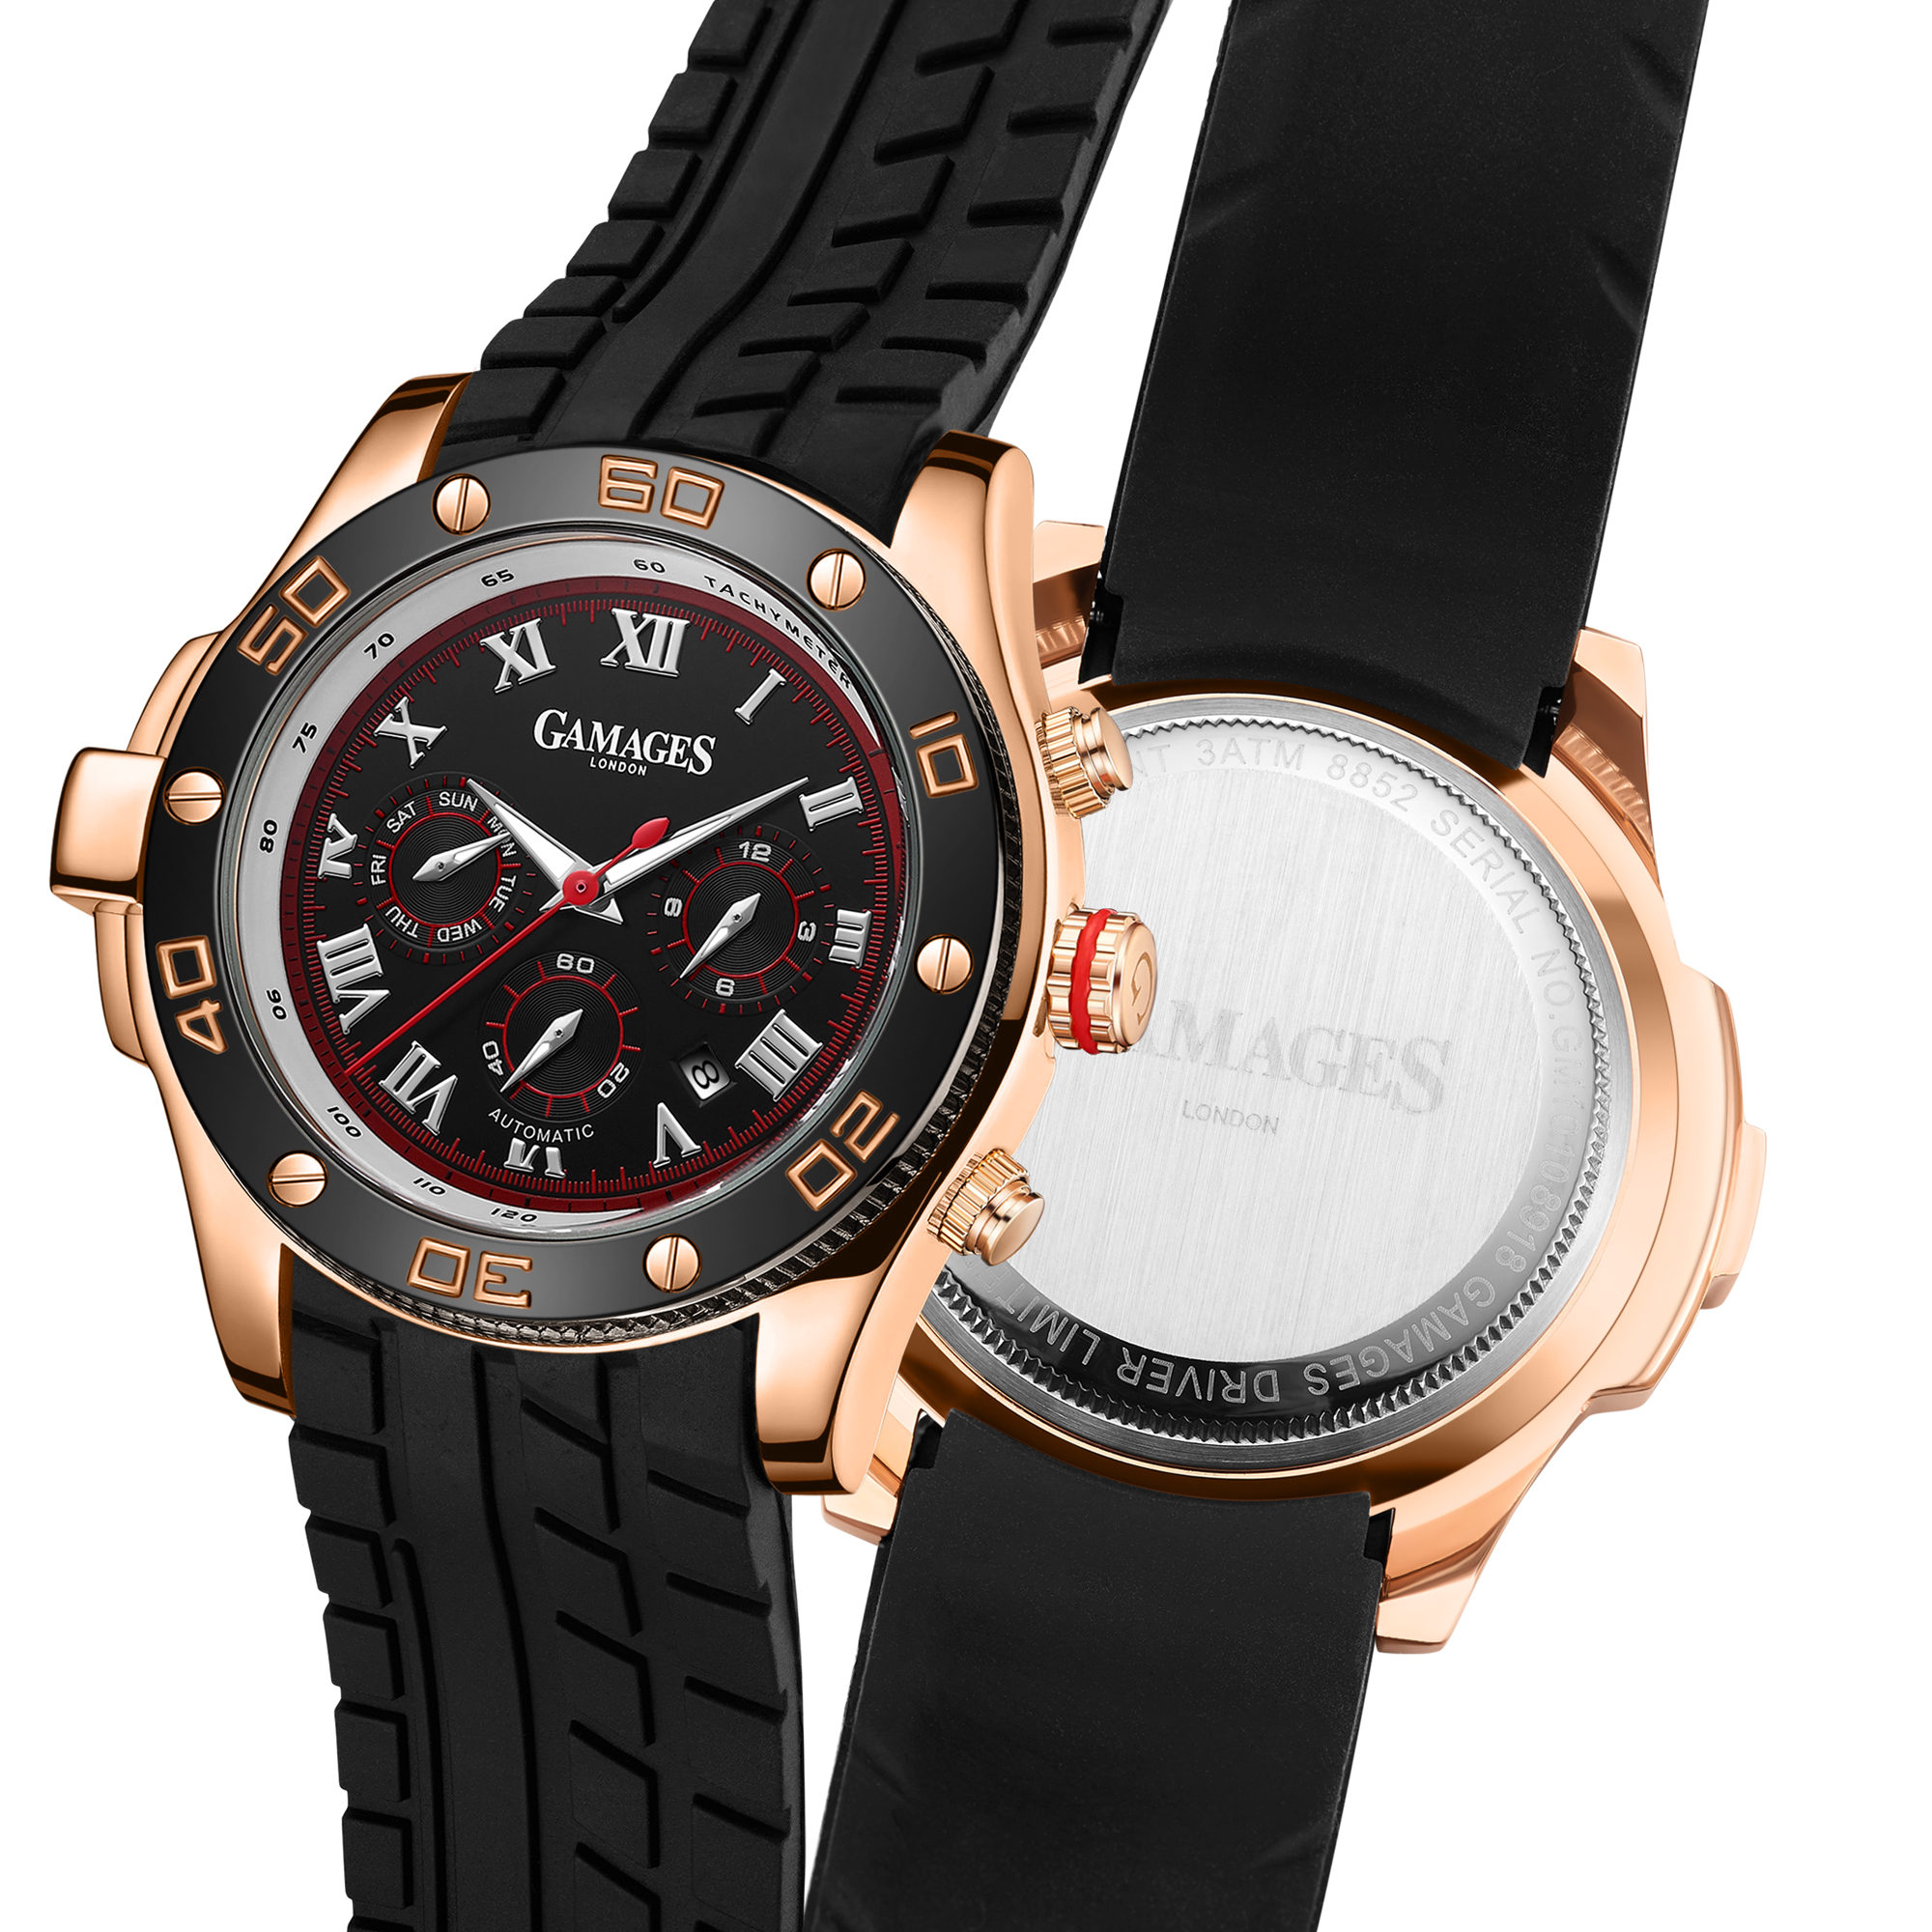 LLtd Edition Hand Assembled Gamages Driver Automatic Rose Gold – 5 Year Warranty & Free Delivery - Image 5 of 5